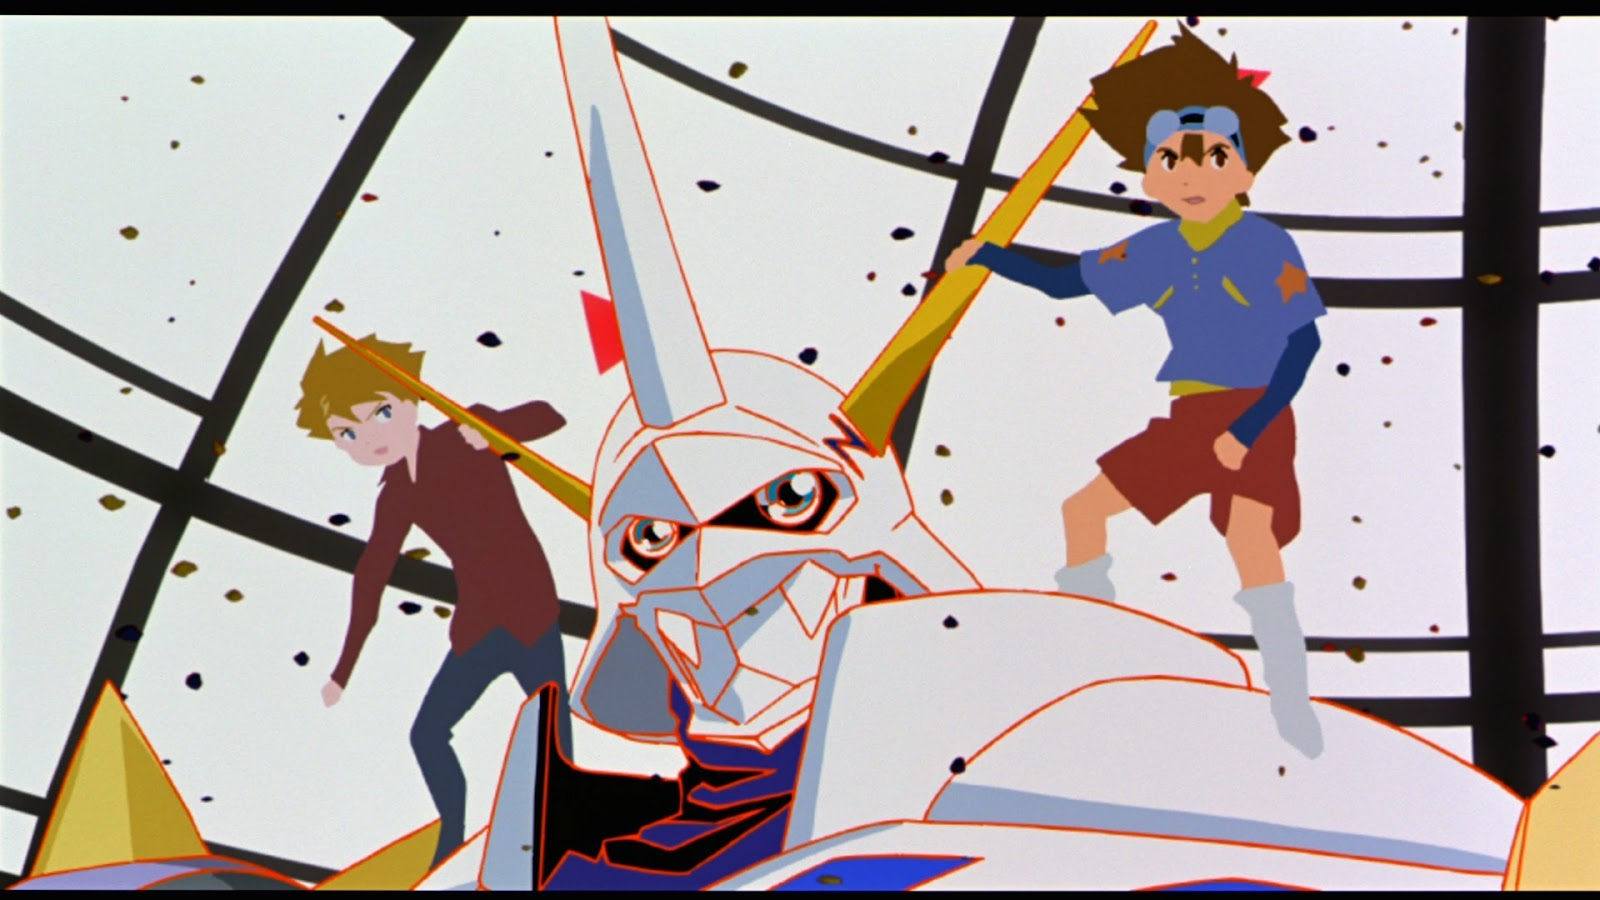 [Por Dentro do Anime com Spoilers] - Digimon Adventure [3/3] Vt6Bpjh